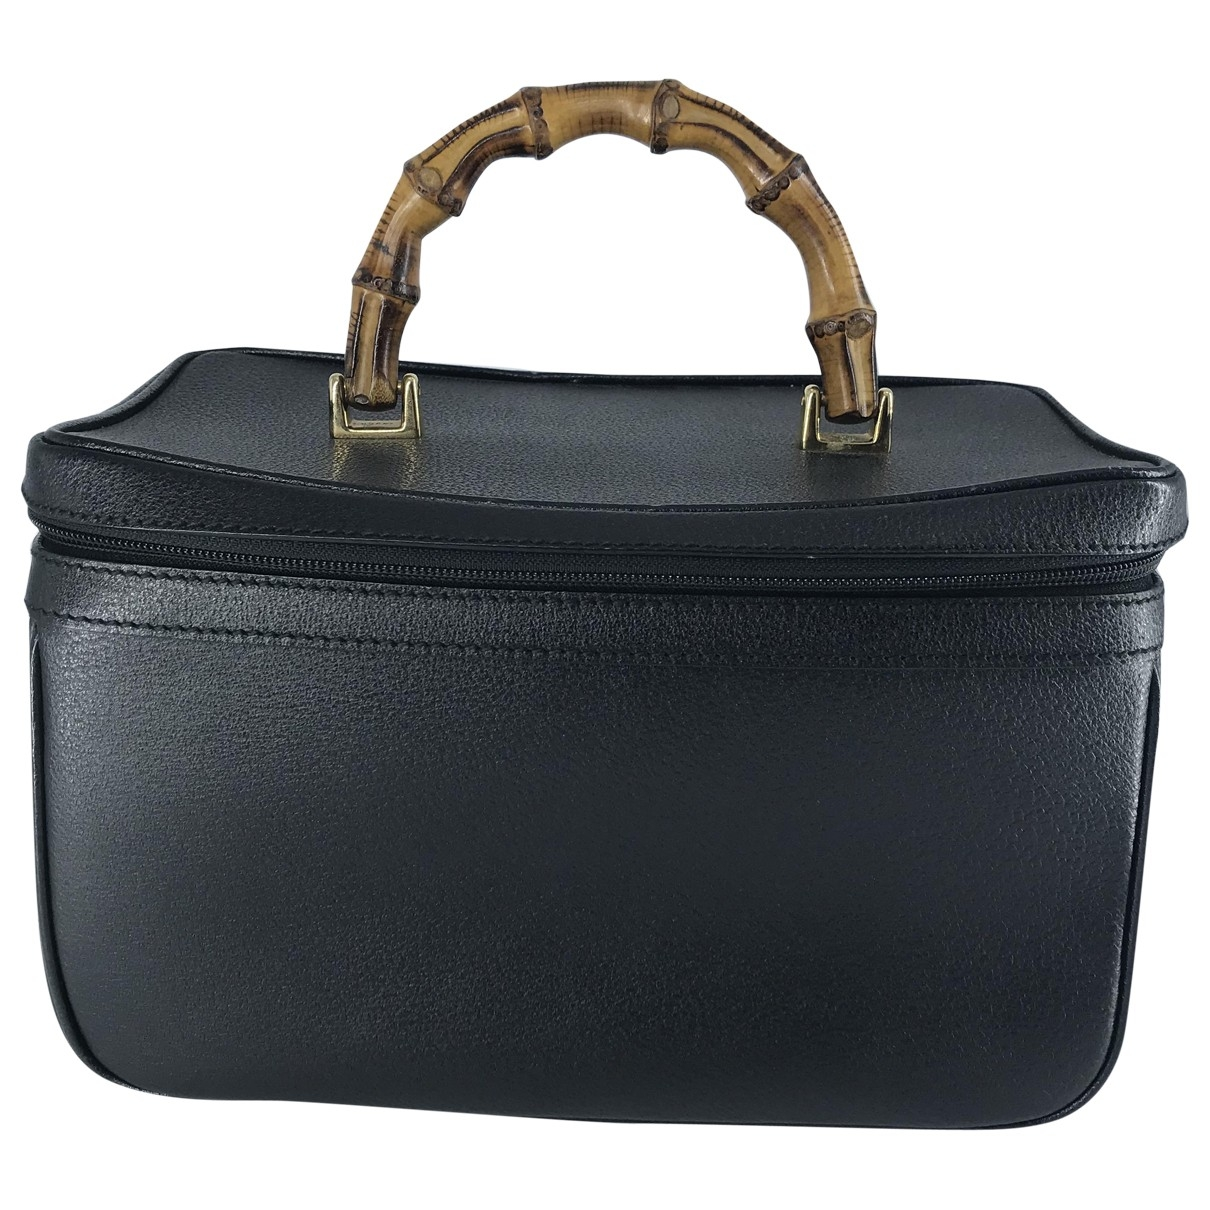 Gucci Bamboo Black Leather Travel bag for Women \N